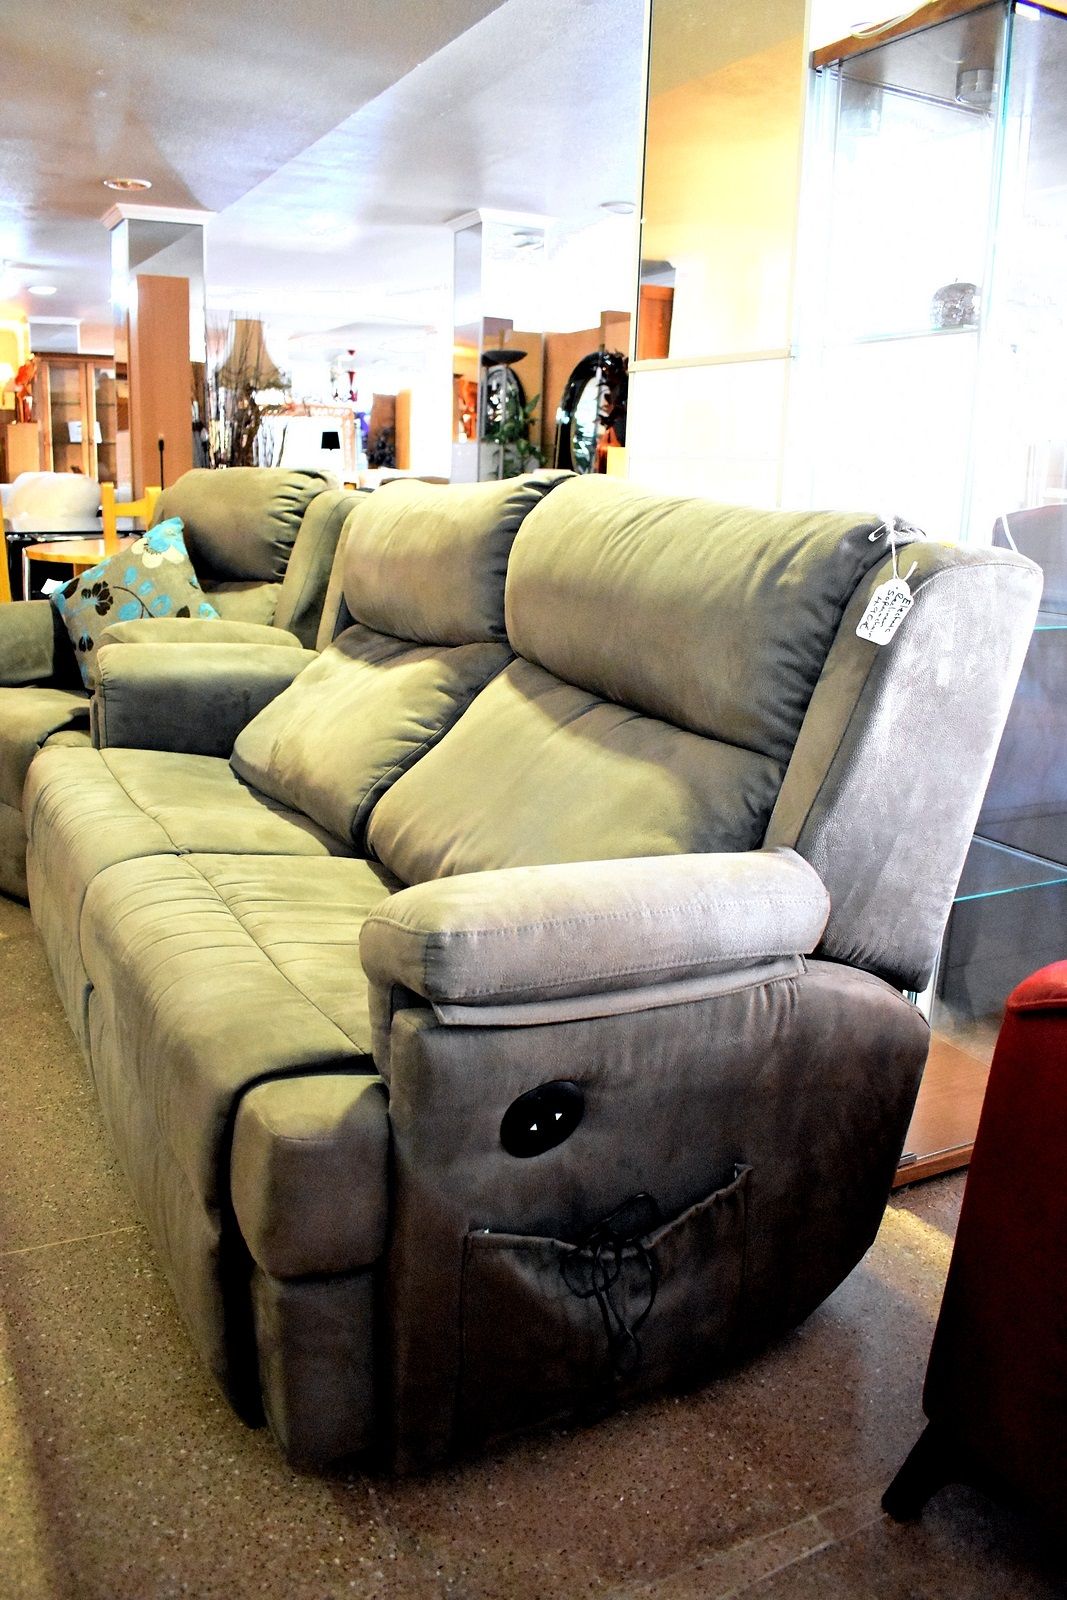 New2you Furniture Second Hand Sofas Sofa Beds For The Living Room Ref L706 Torrevieja Spain